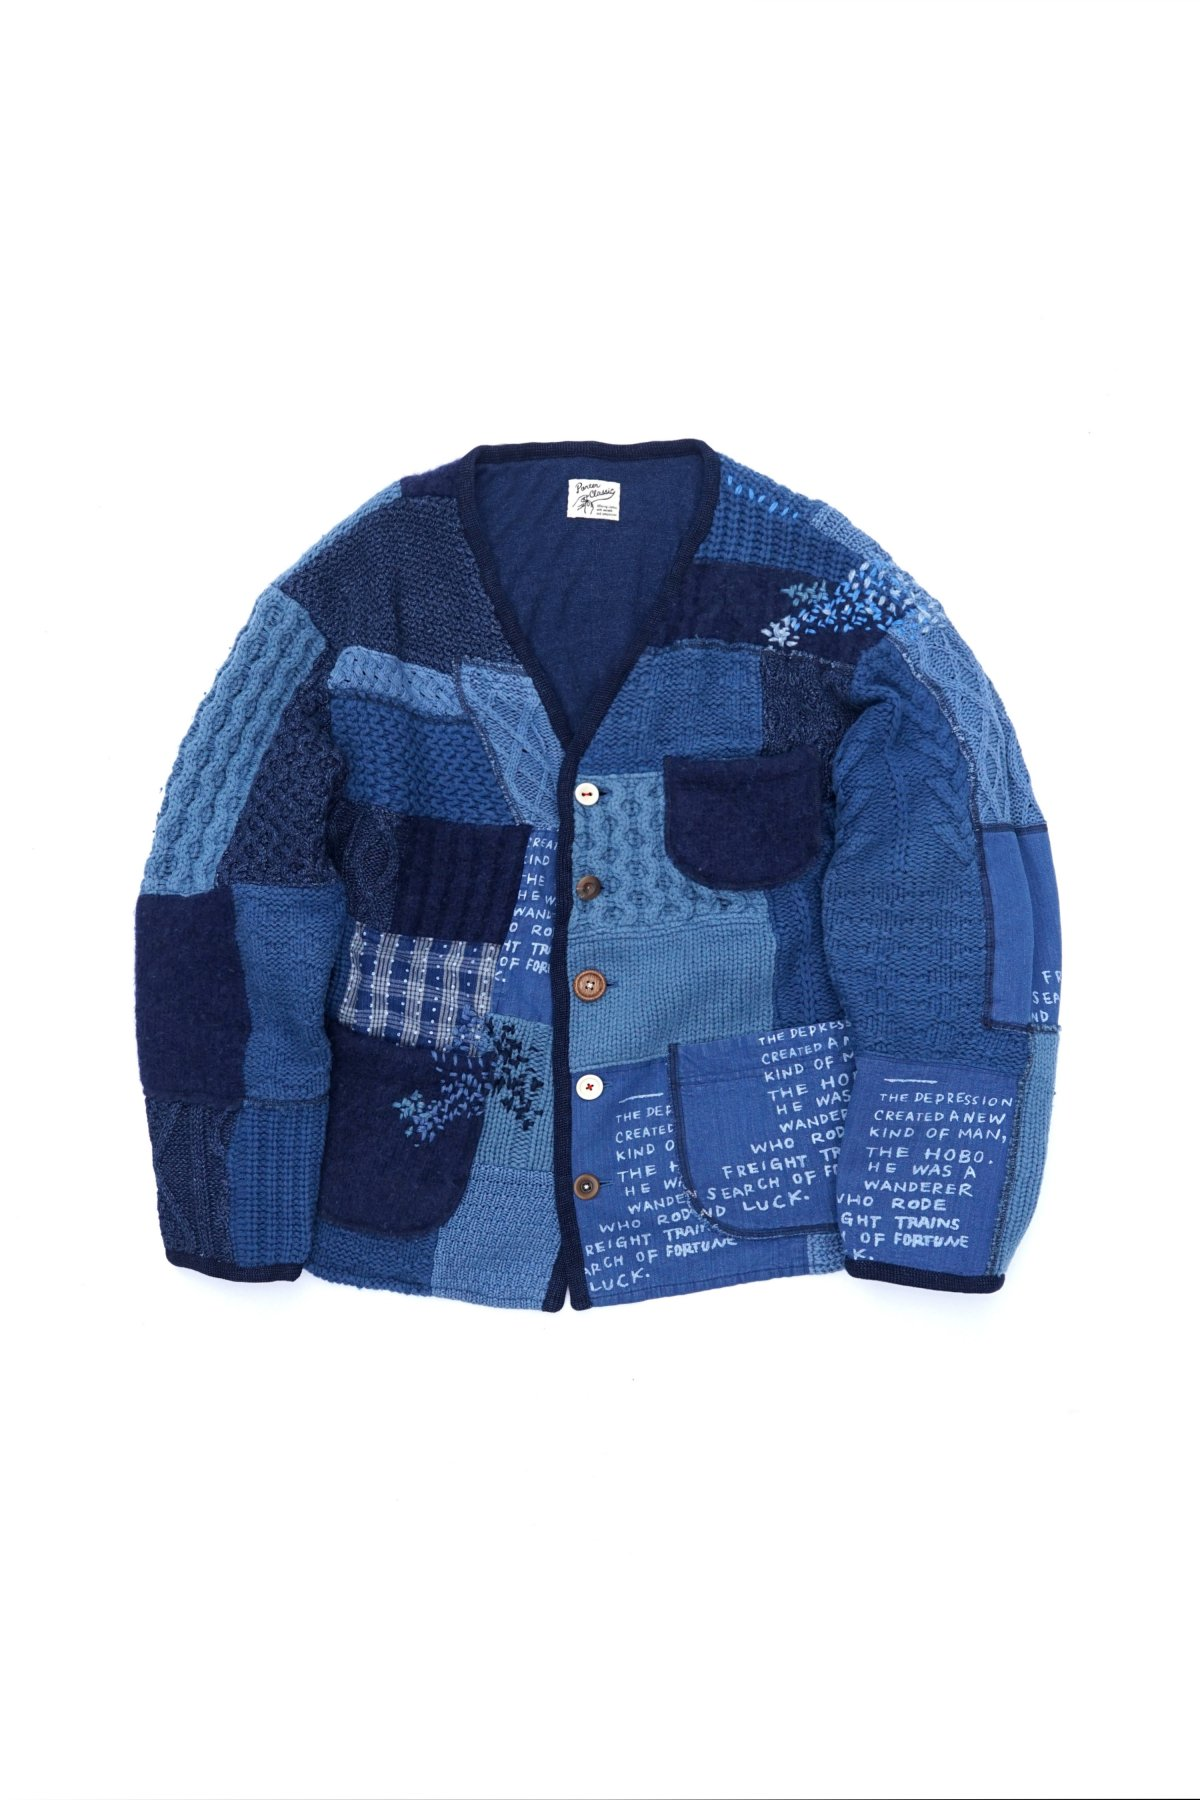 - Porter Classic - H/W PATCHWORK KNIT CARDIGAN - BLUE PRICE 165,000 tax-in